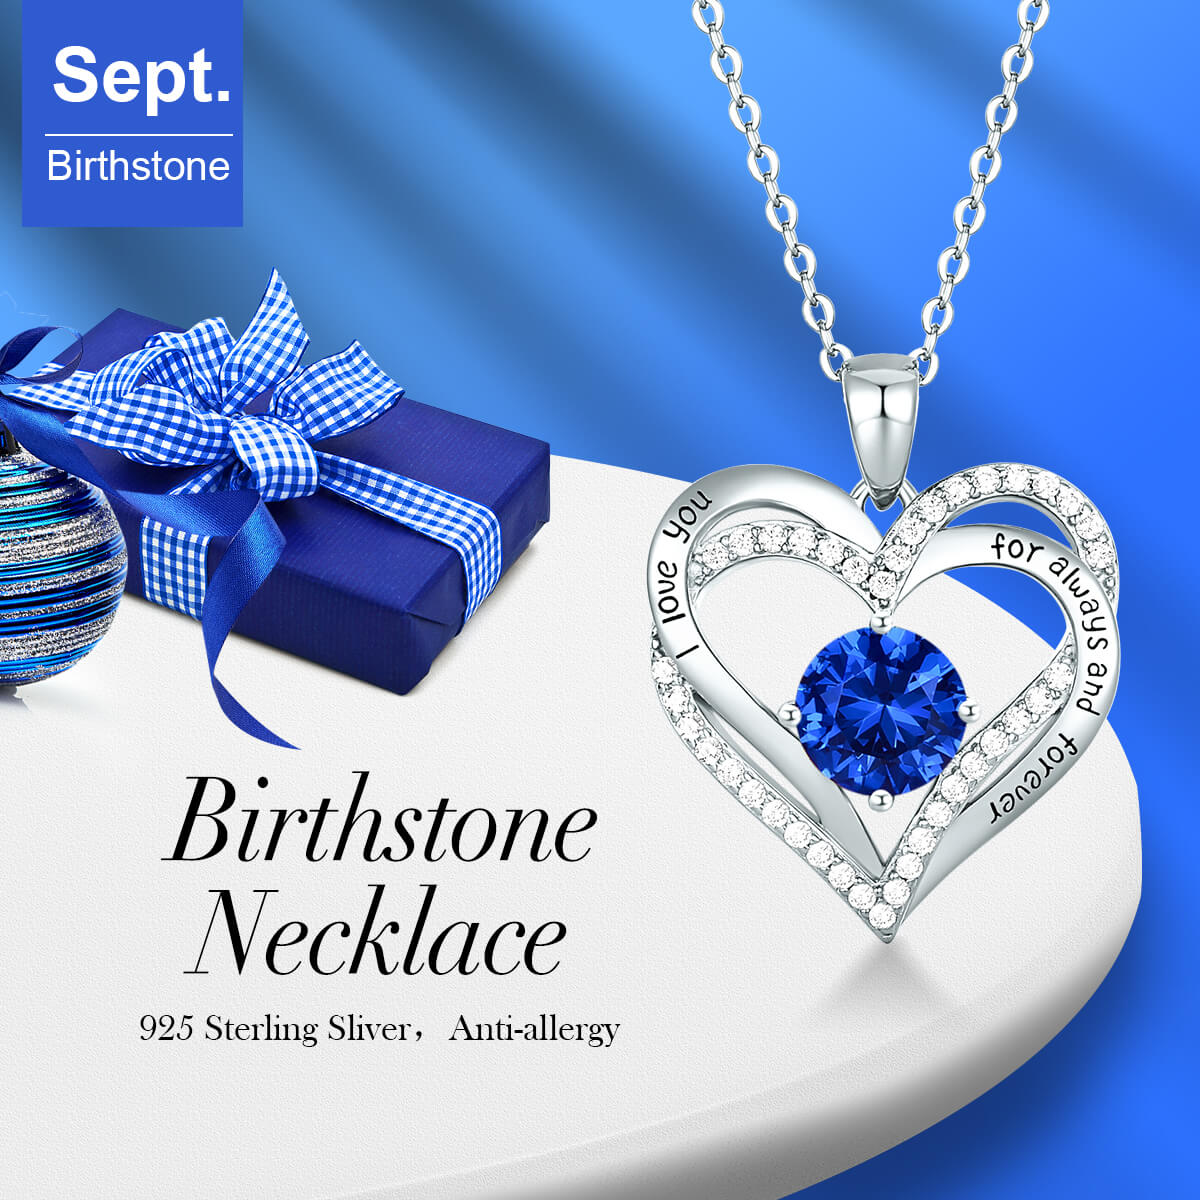 September Birthstone Necklace